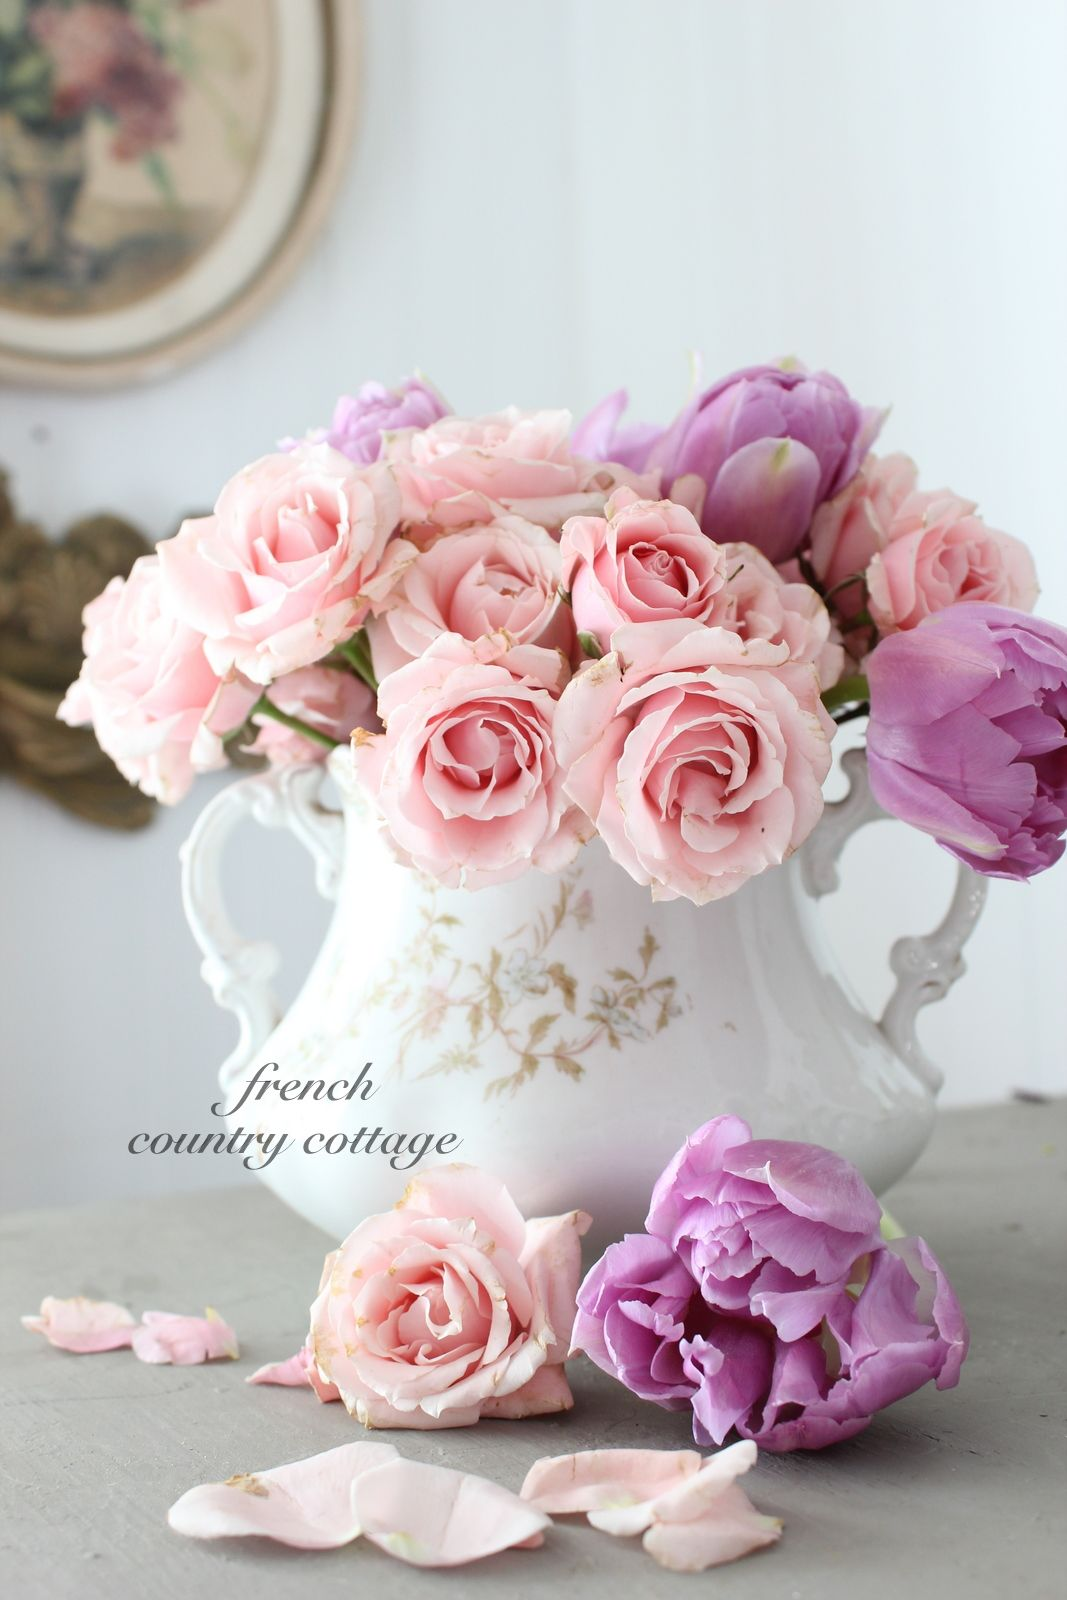 French country cottage fresh cottage flowers beautiful blooms french country cottage fresh cottage flowers reviewsmspy